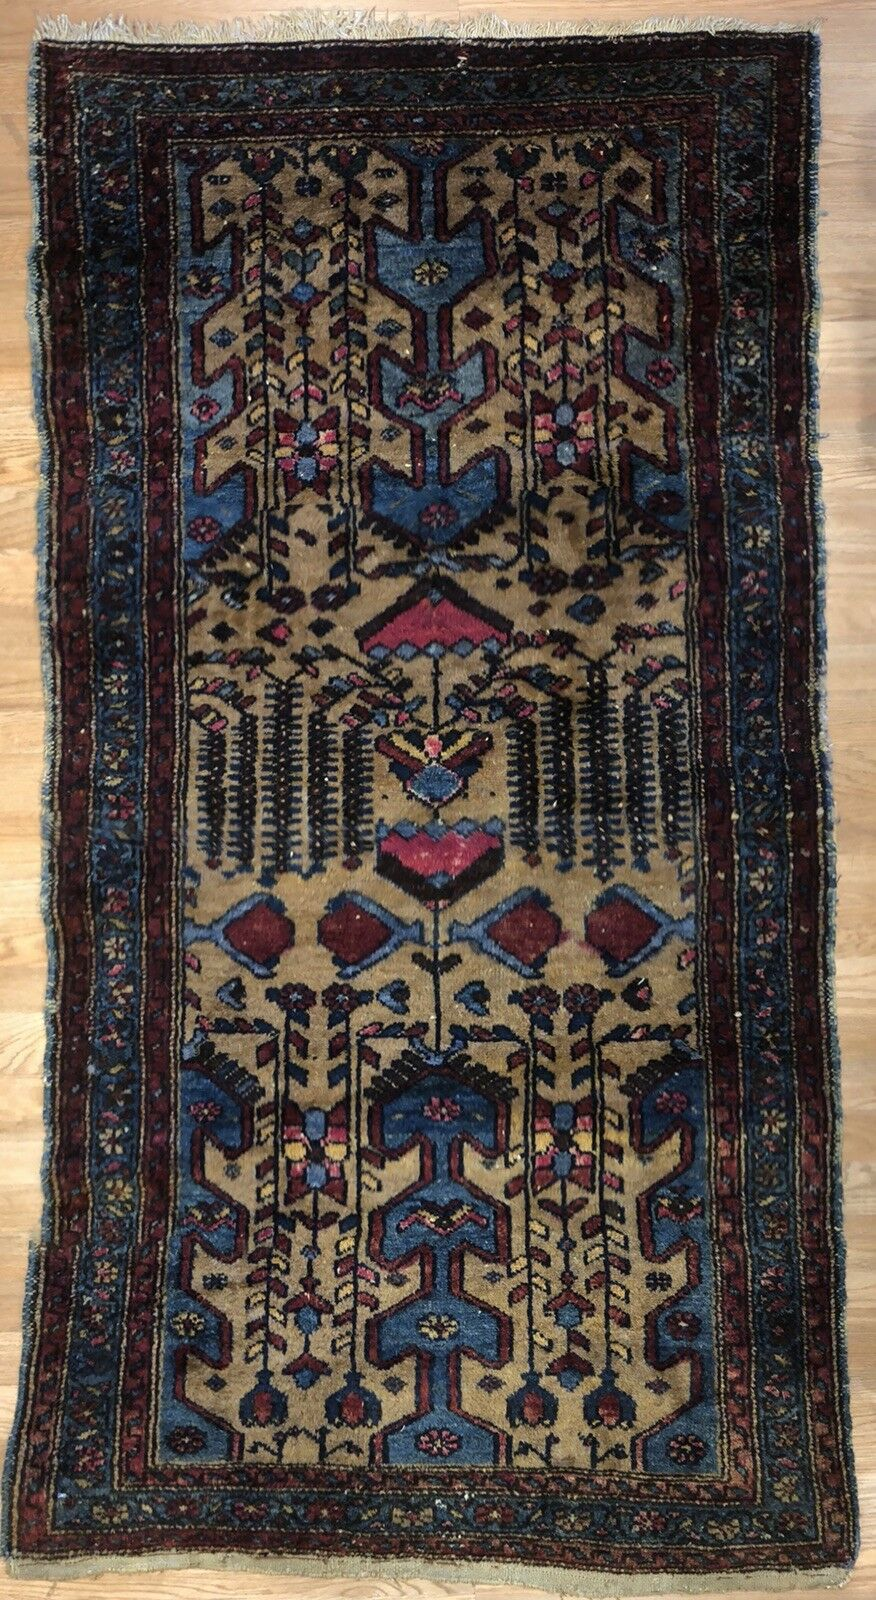 Special Serab - 1920s Antique Camel Hair Rug - Tribal Carpet - 3'4